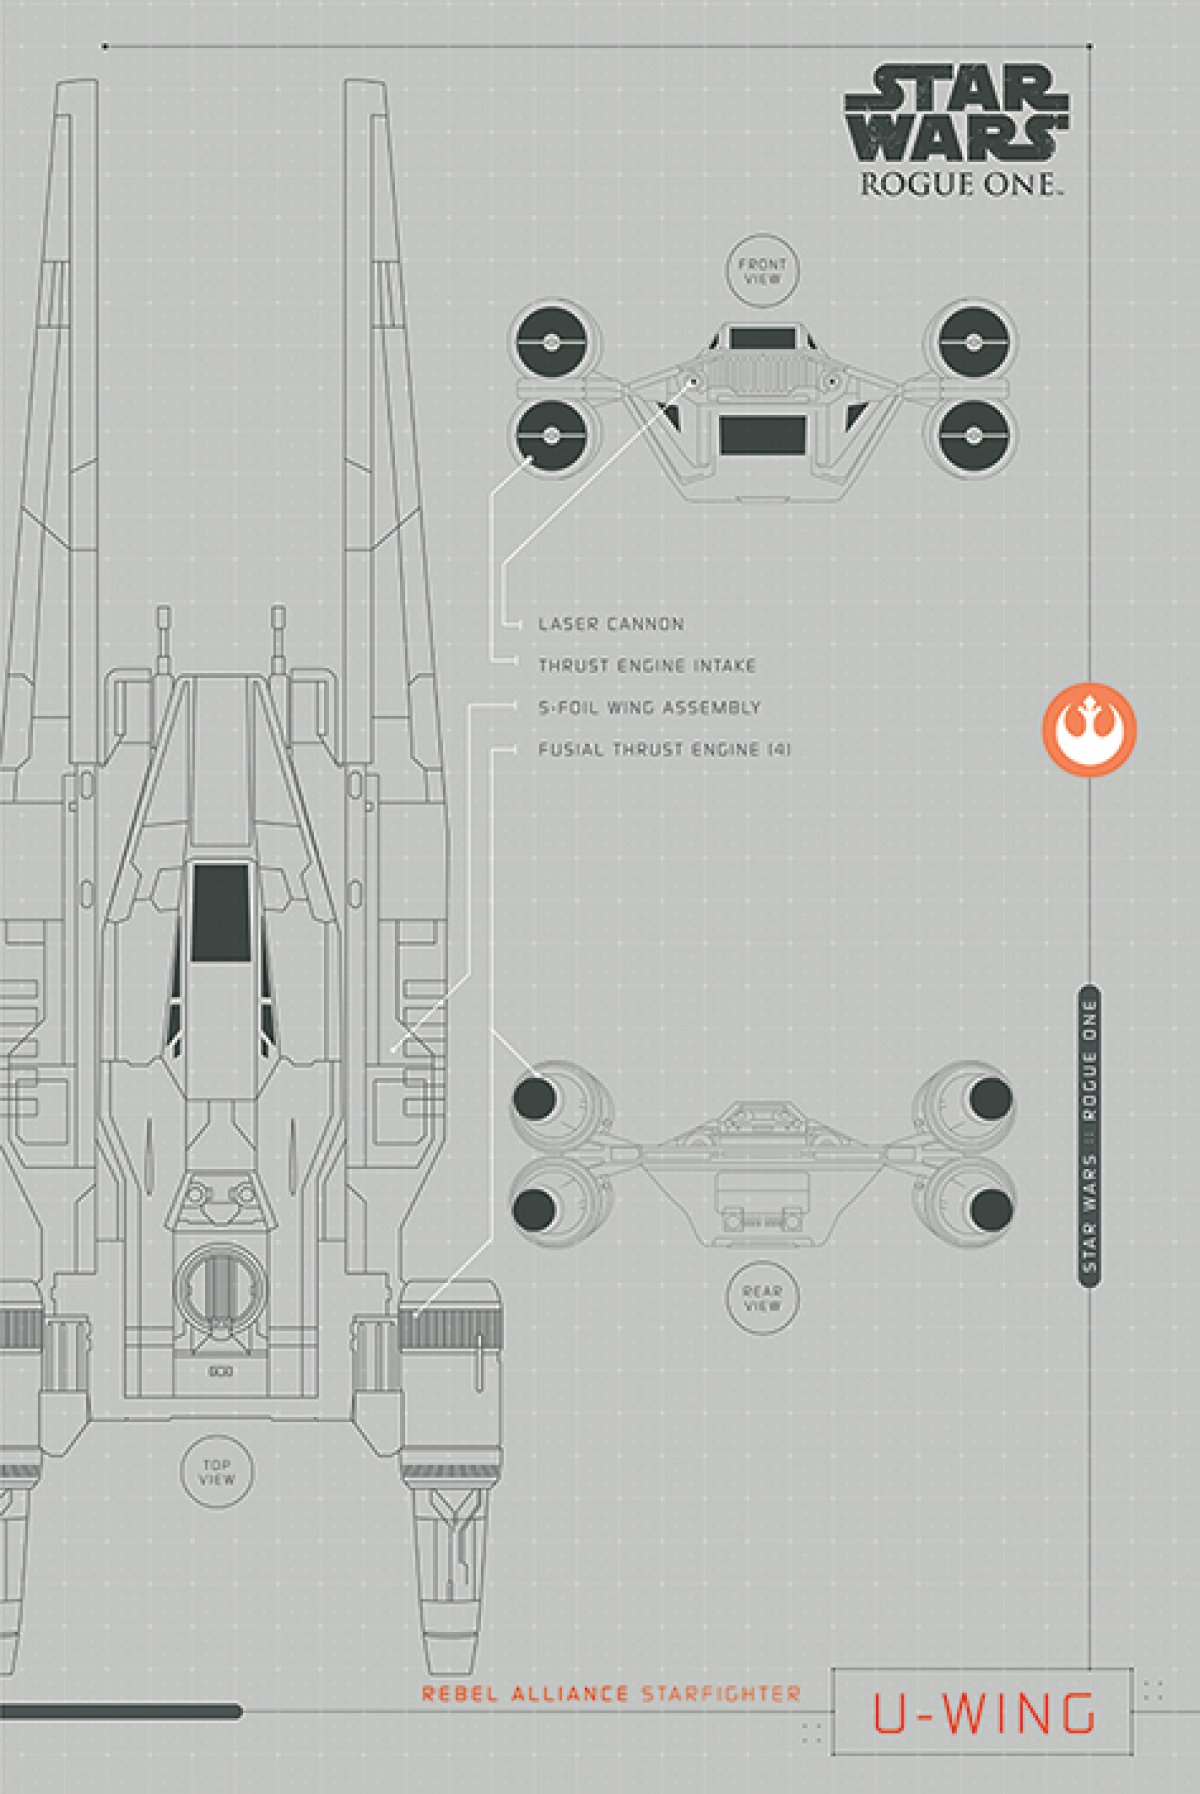 New Rogue One Official Posters Pyramid Int Hd A Star Wars Story U Wing Schematic